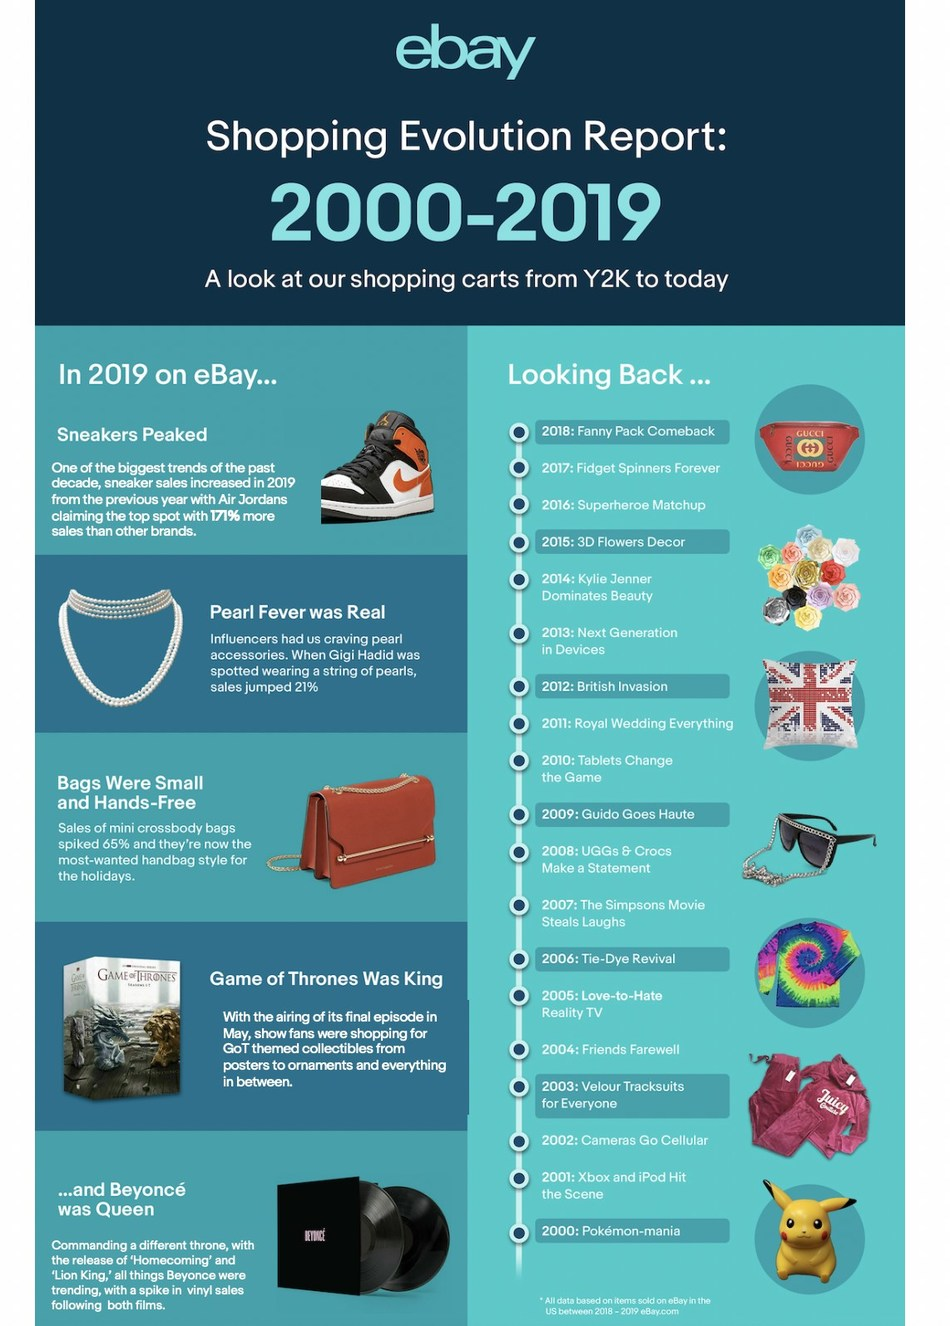 Y2k To Now The Top Trends That Shaped The Past Two Decades According To Ebay